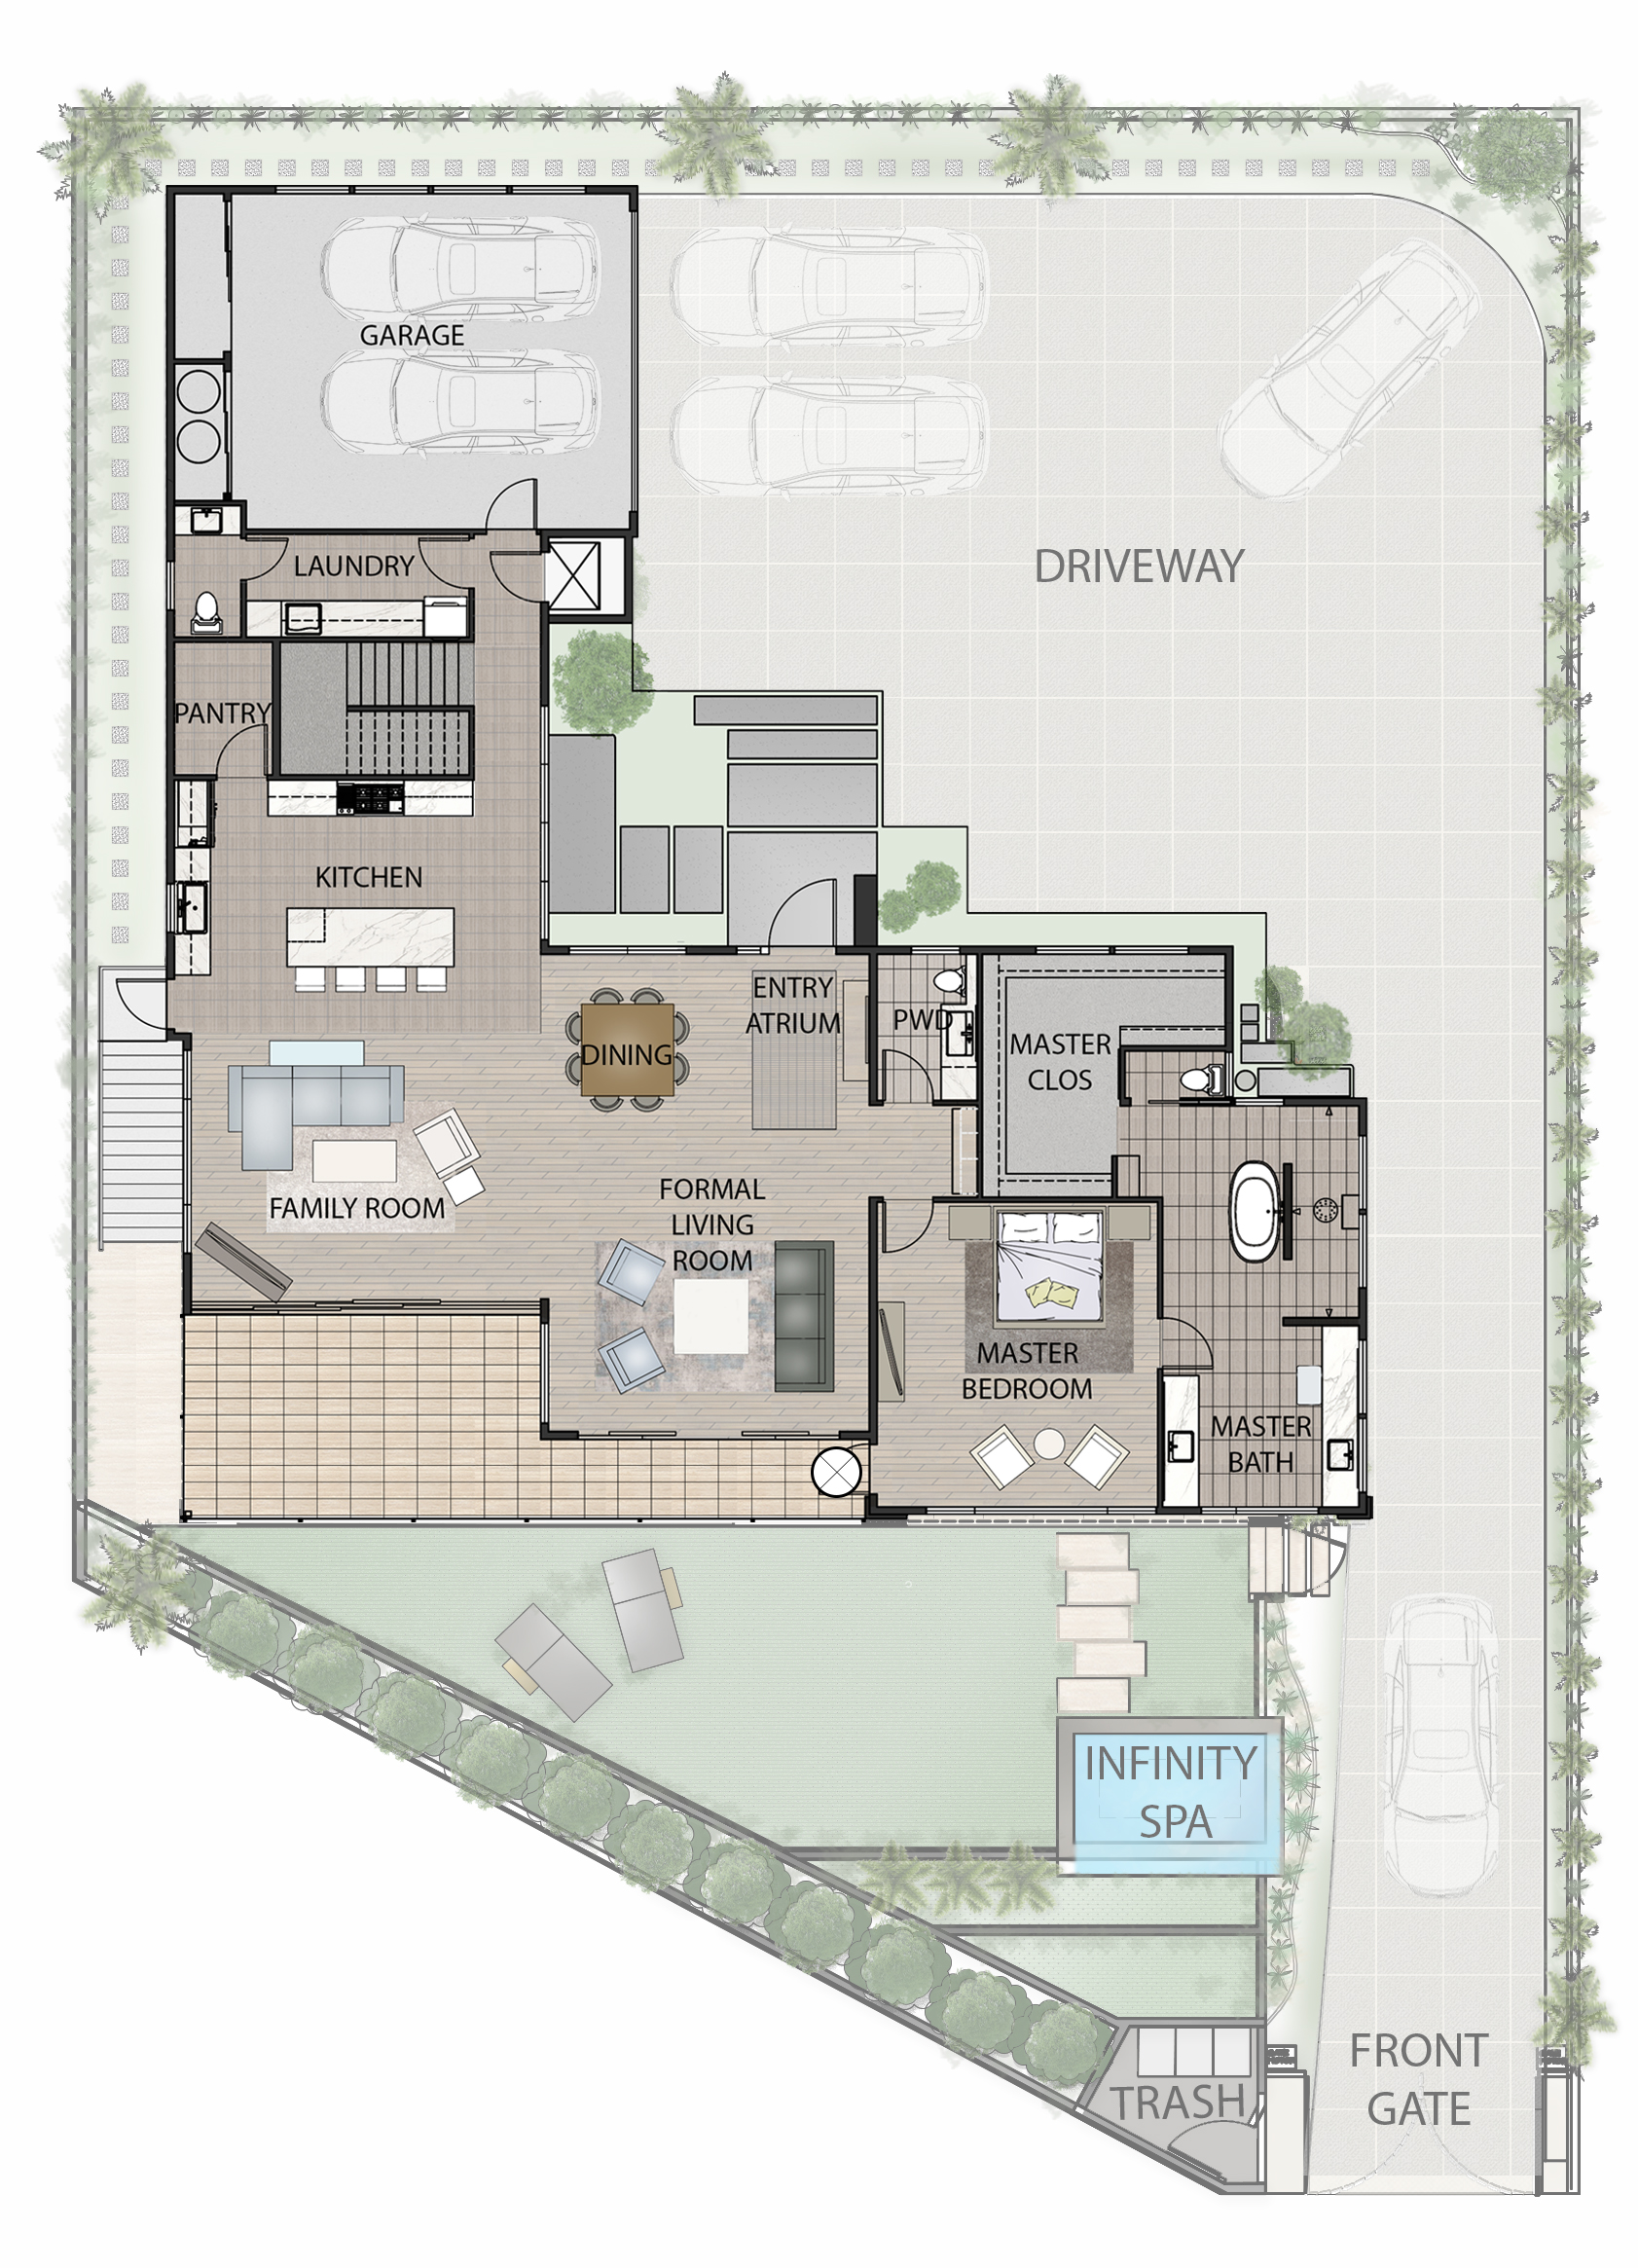 506 Hakaka Place Main Level Floorplan